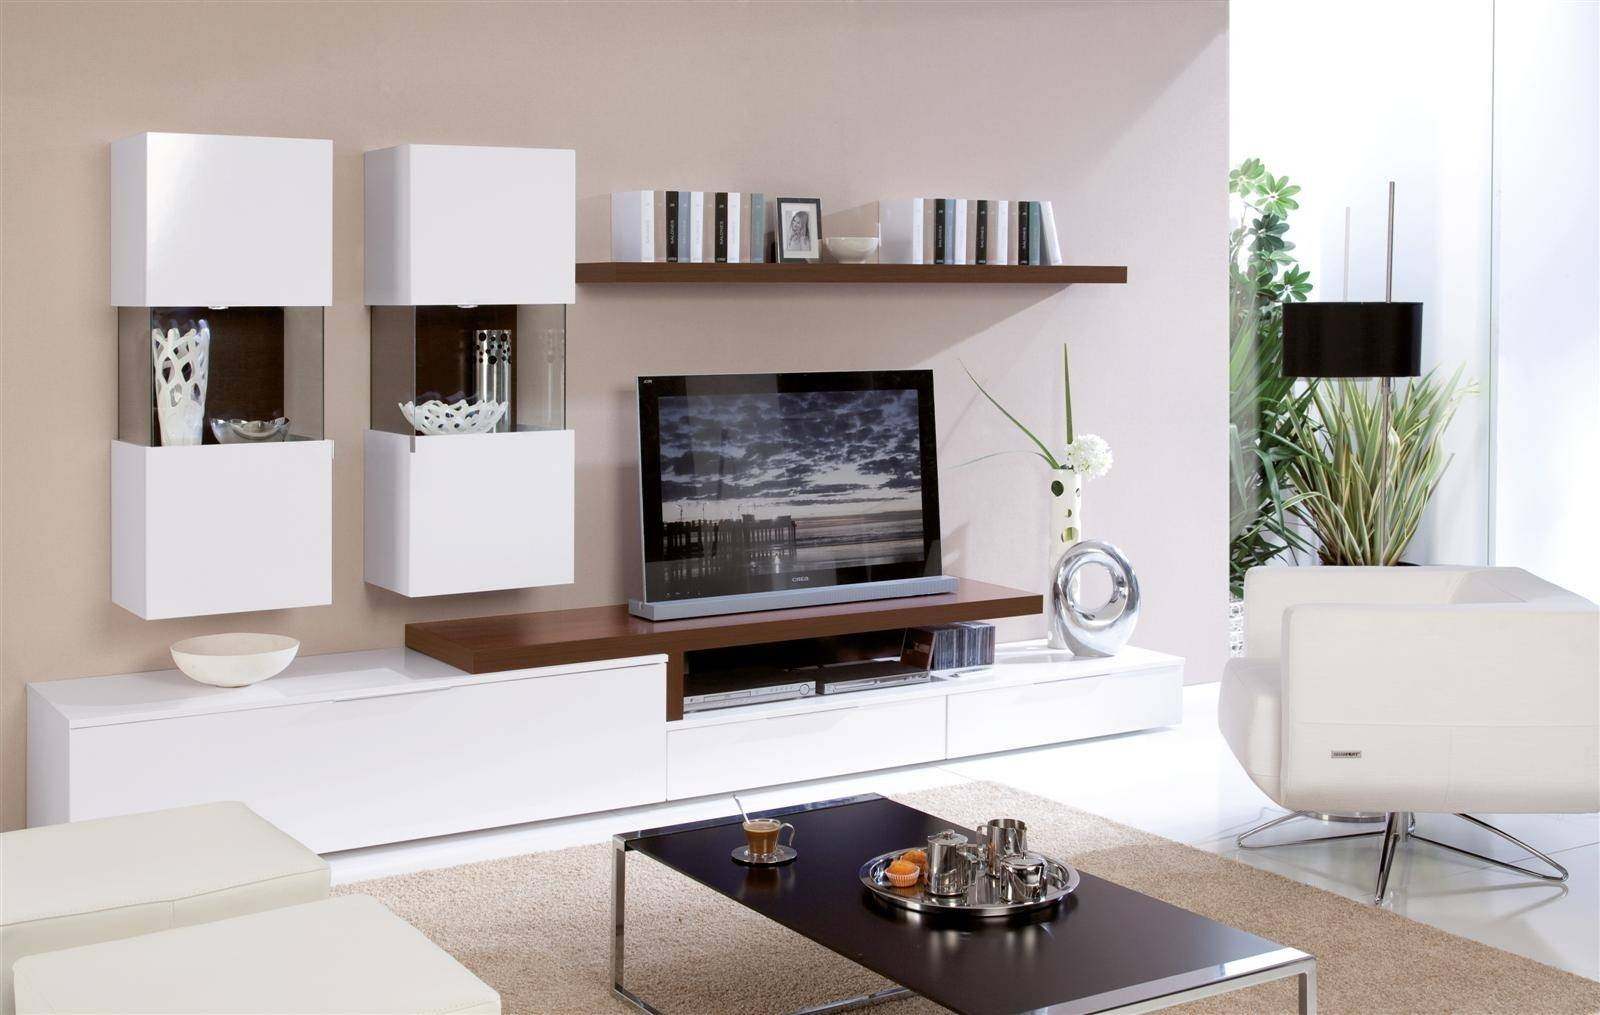 Bedroom : Beautiful Cool Tv Wall Unit Design Splendid Gorgeous with regard to Contemporary Tv Wall Units (Image 3 of 15)